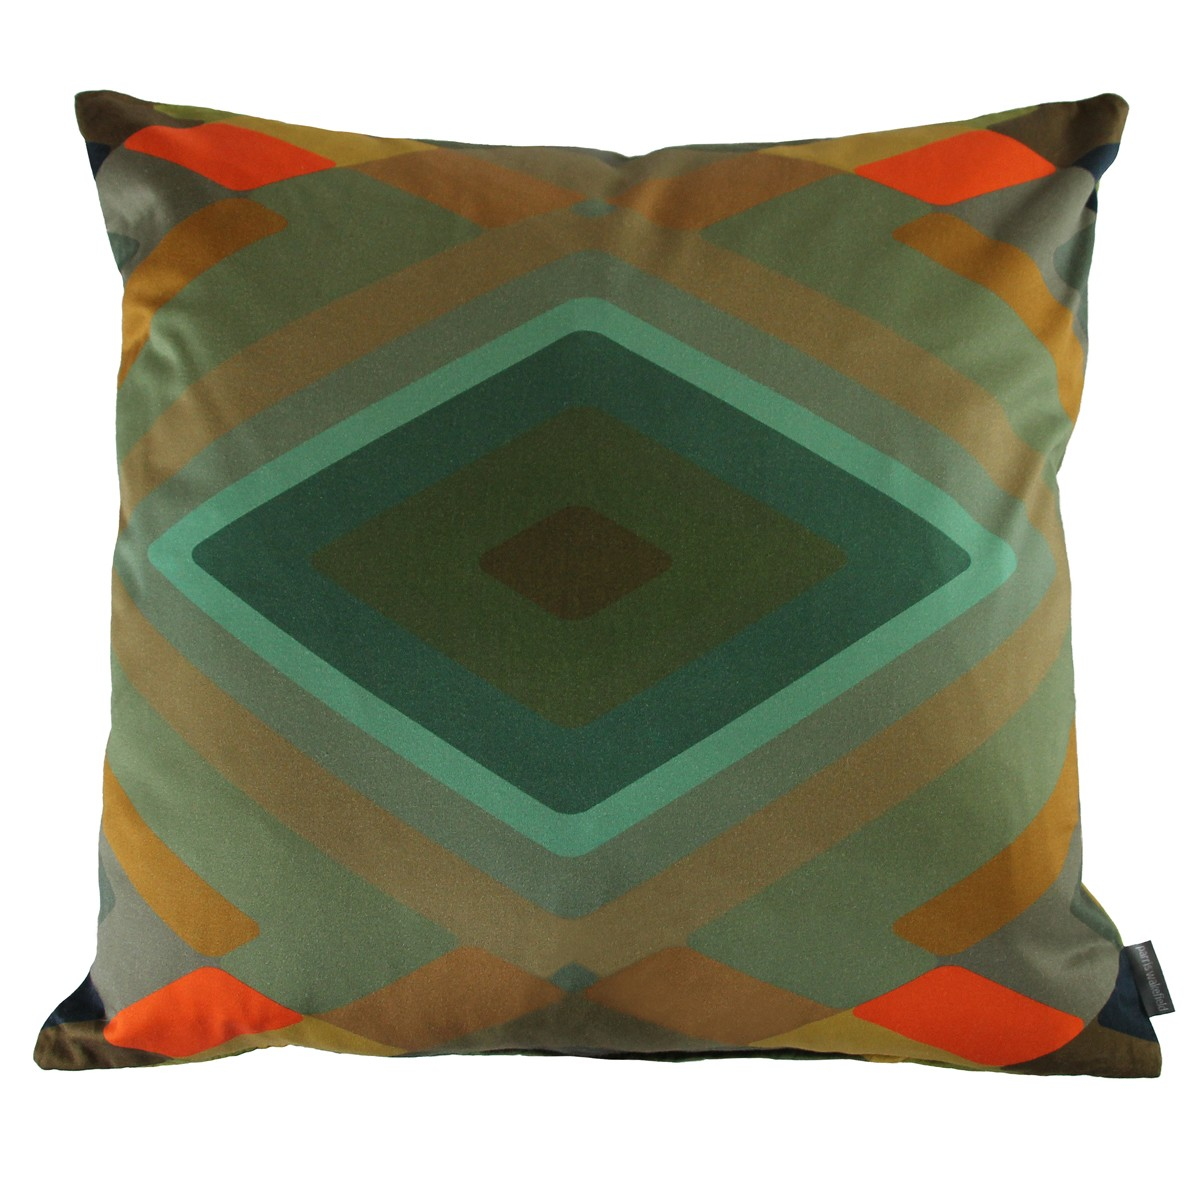 Field Square Cushion Large